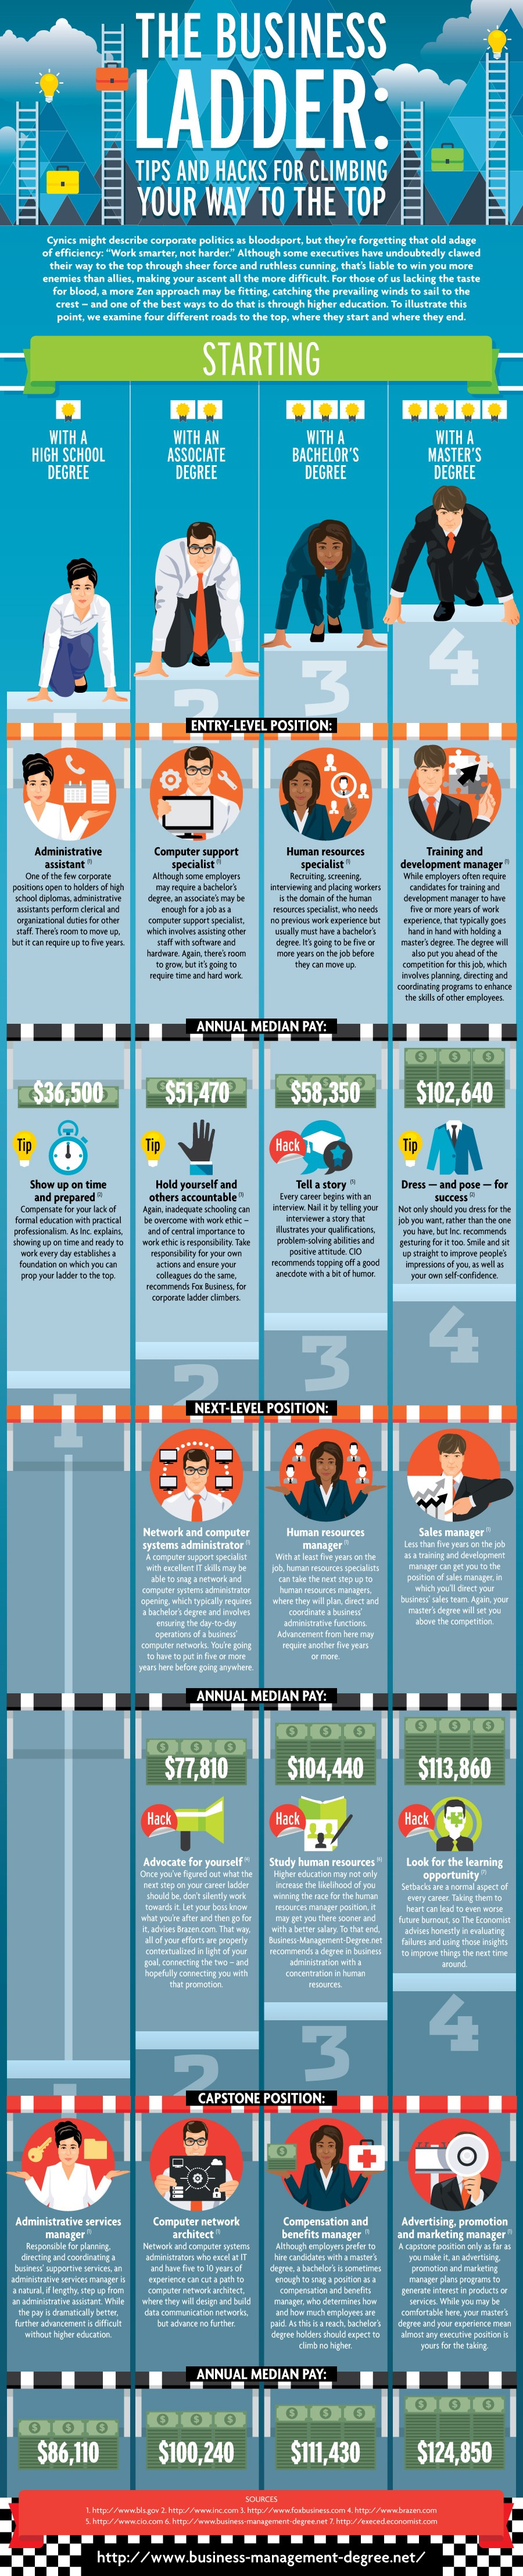 Hacks For Climbing Your Way Up The Business Ladder - Infographic